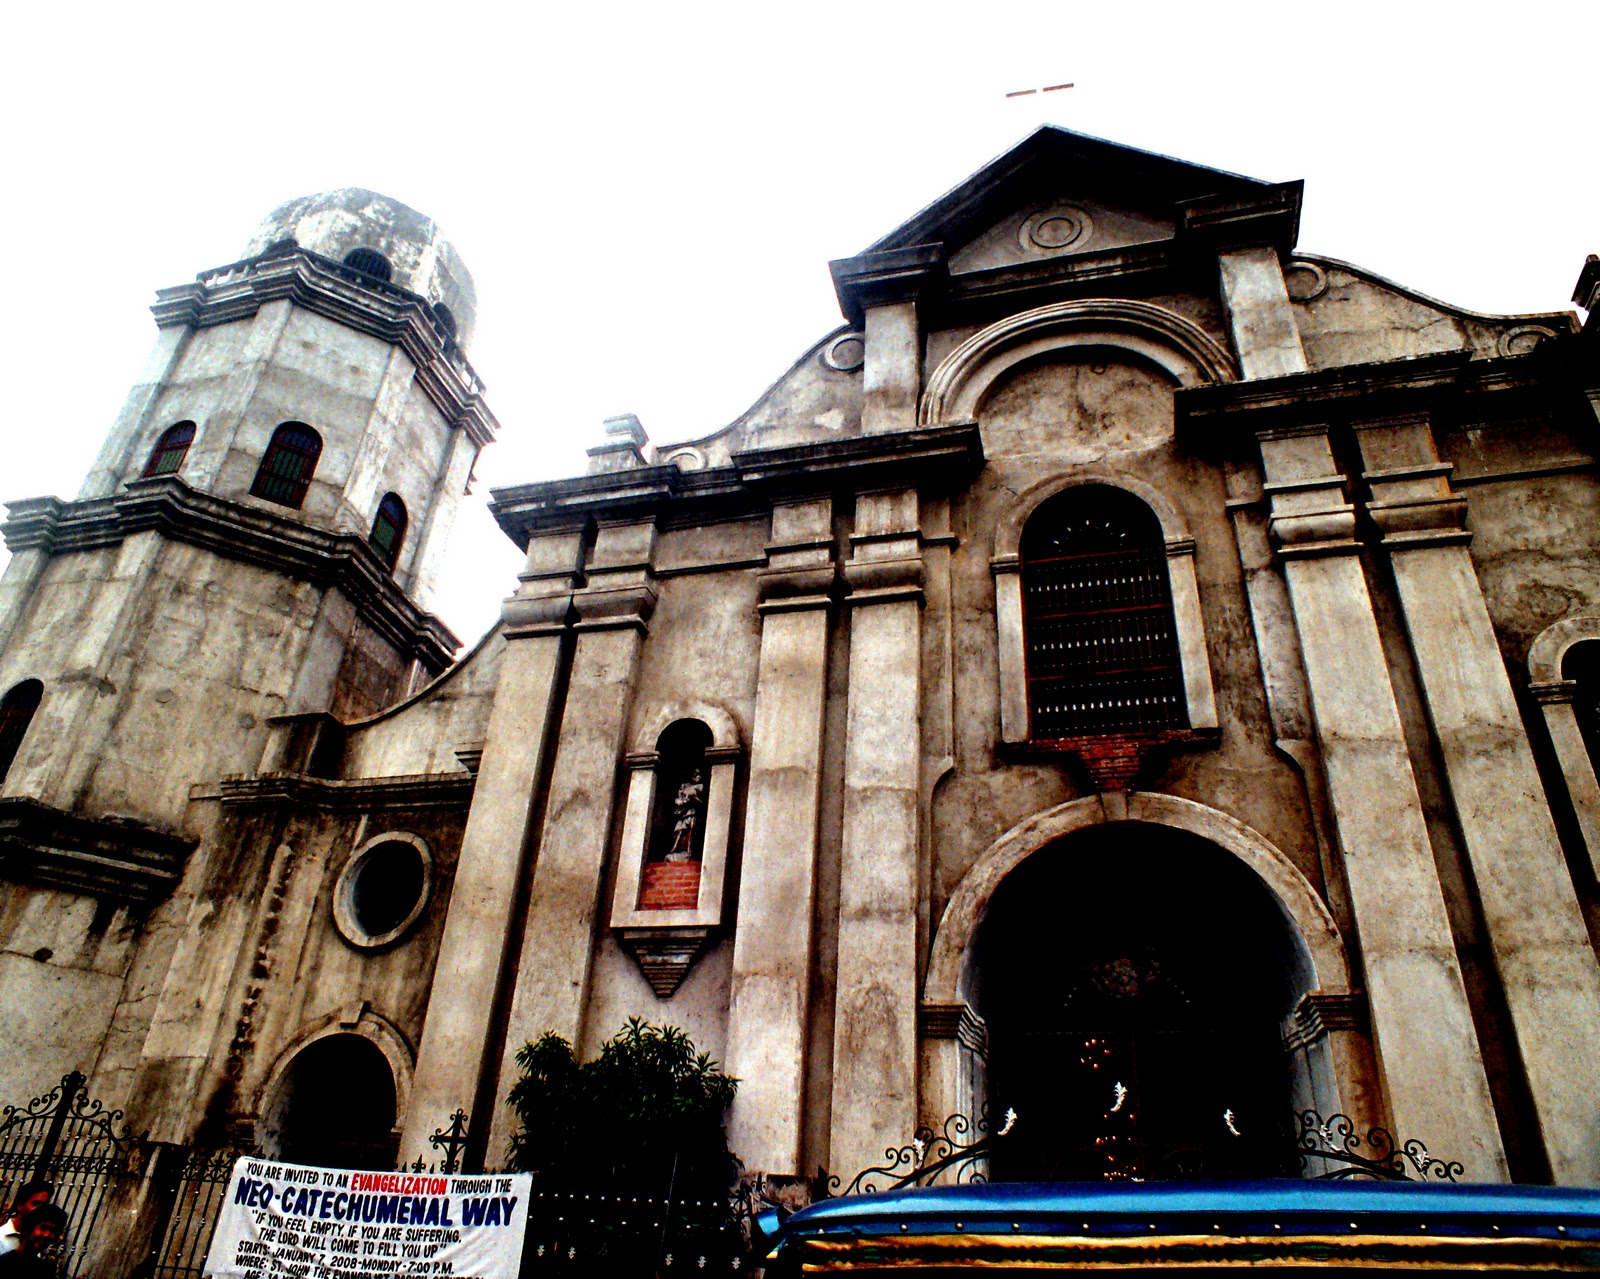 Santuario de San Juan Evangelista, formerly St. John the Evangelist Cathedral Church